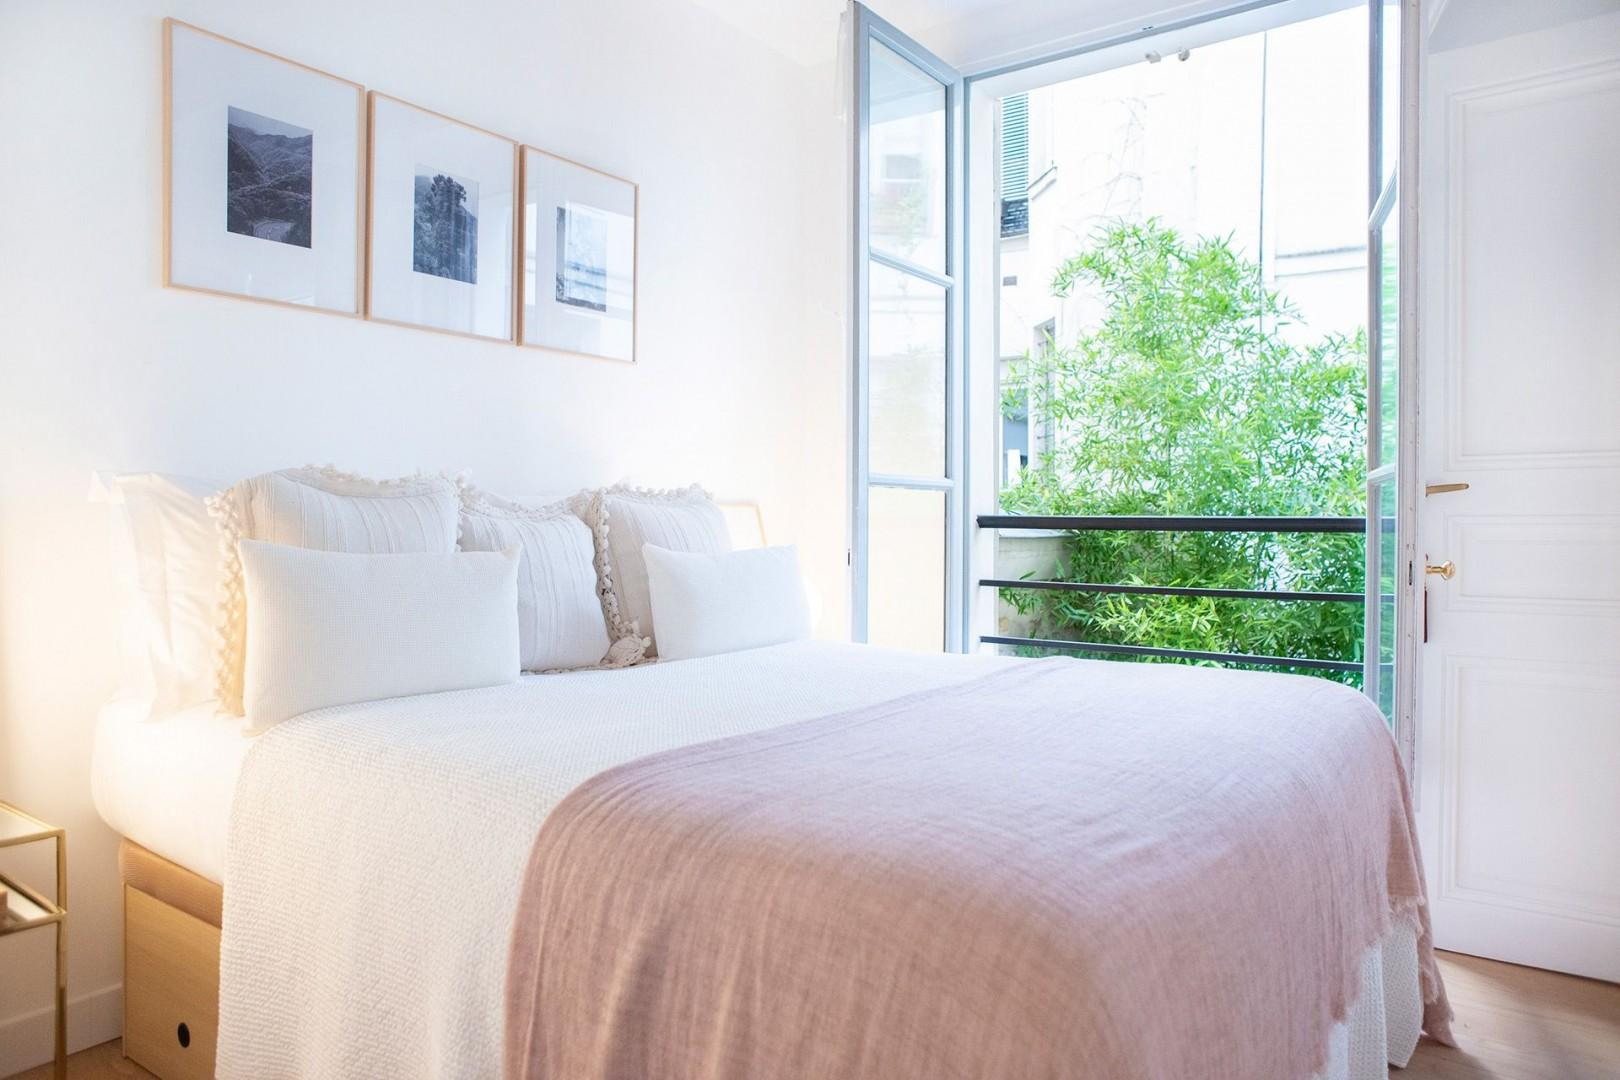 Wake up next to the French window with lovely courtyard views.